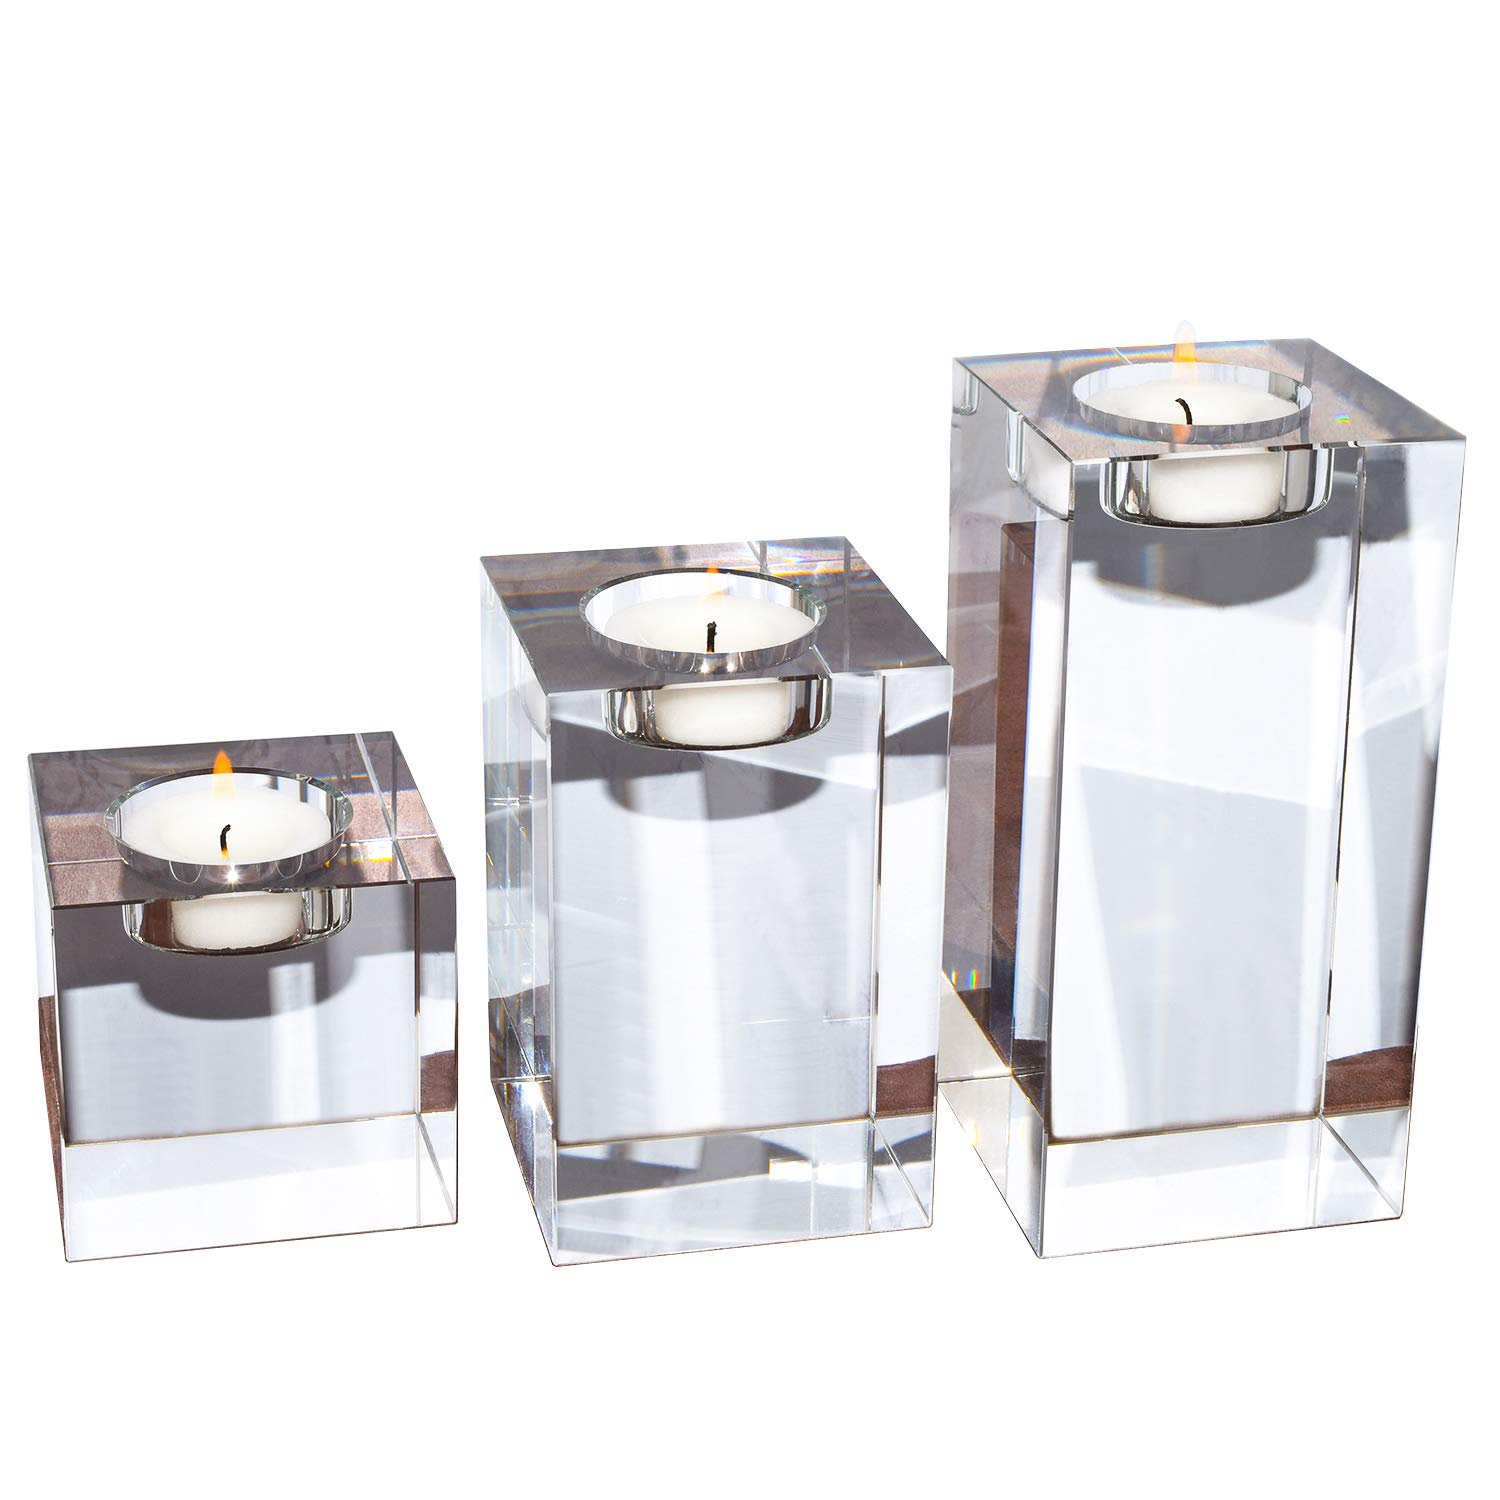 """Amazing Home Large Crystal Candle Holders Set of 3, 3.1/4.7/6.3 inches, Prepackaged Elegant Heavy Solid Square Tealight Holders Set Centerpieces for Wedding, Home Decor and Anniversary (2.7""""x2.7)"""